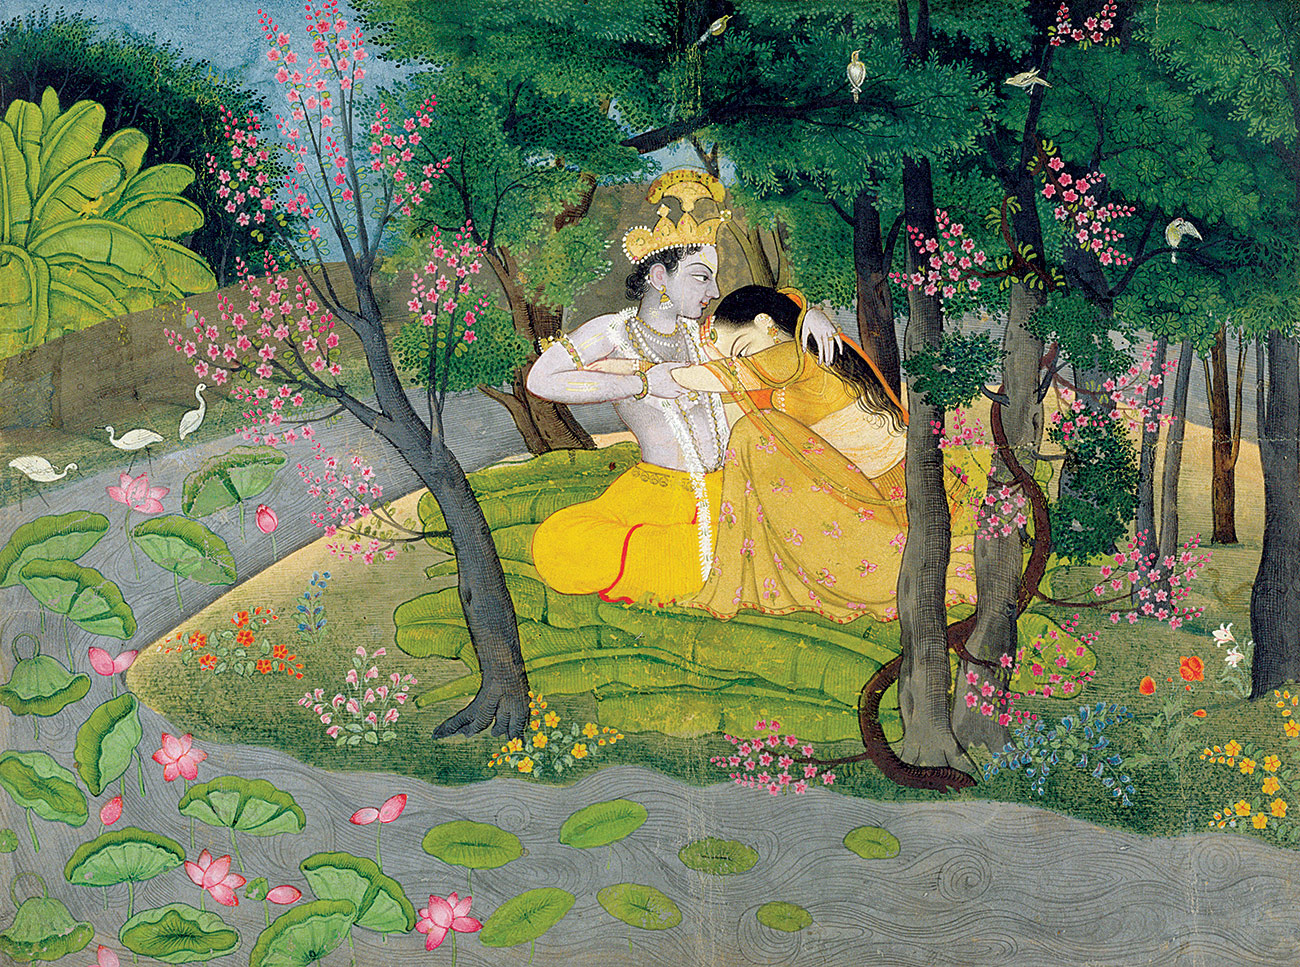 Radha and Krishna Embrace in a Grove of Flowering Trees, North India, c.1780.